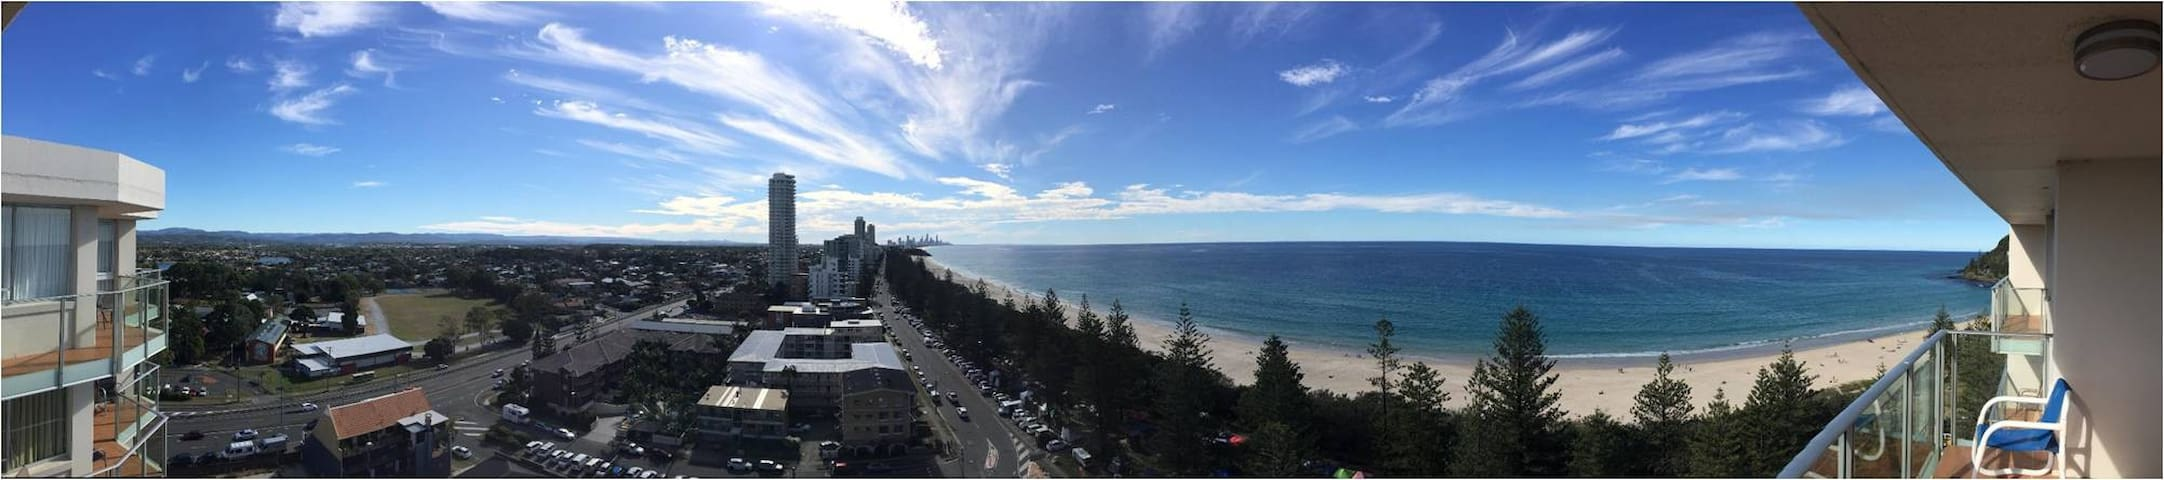 Panoramic view from the balcony